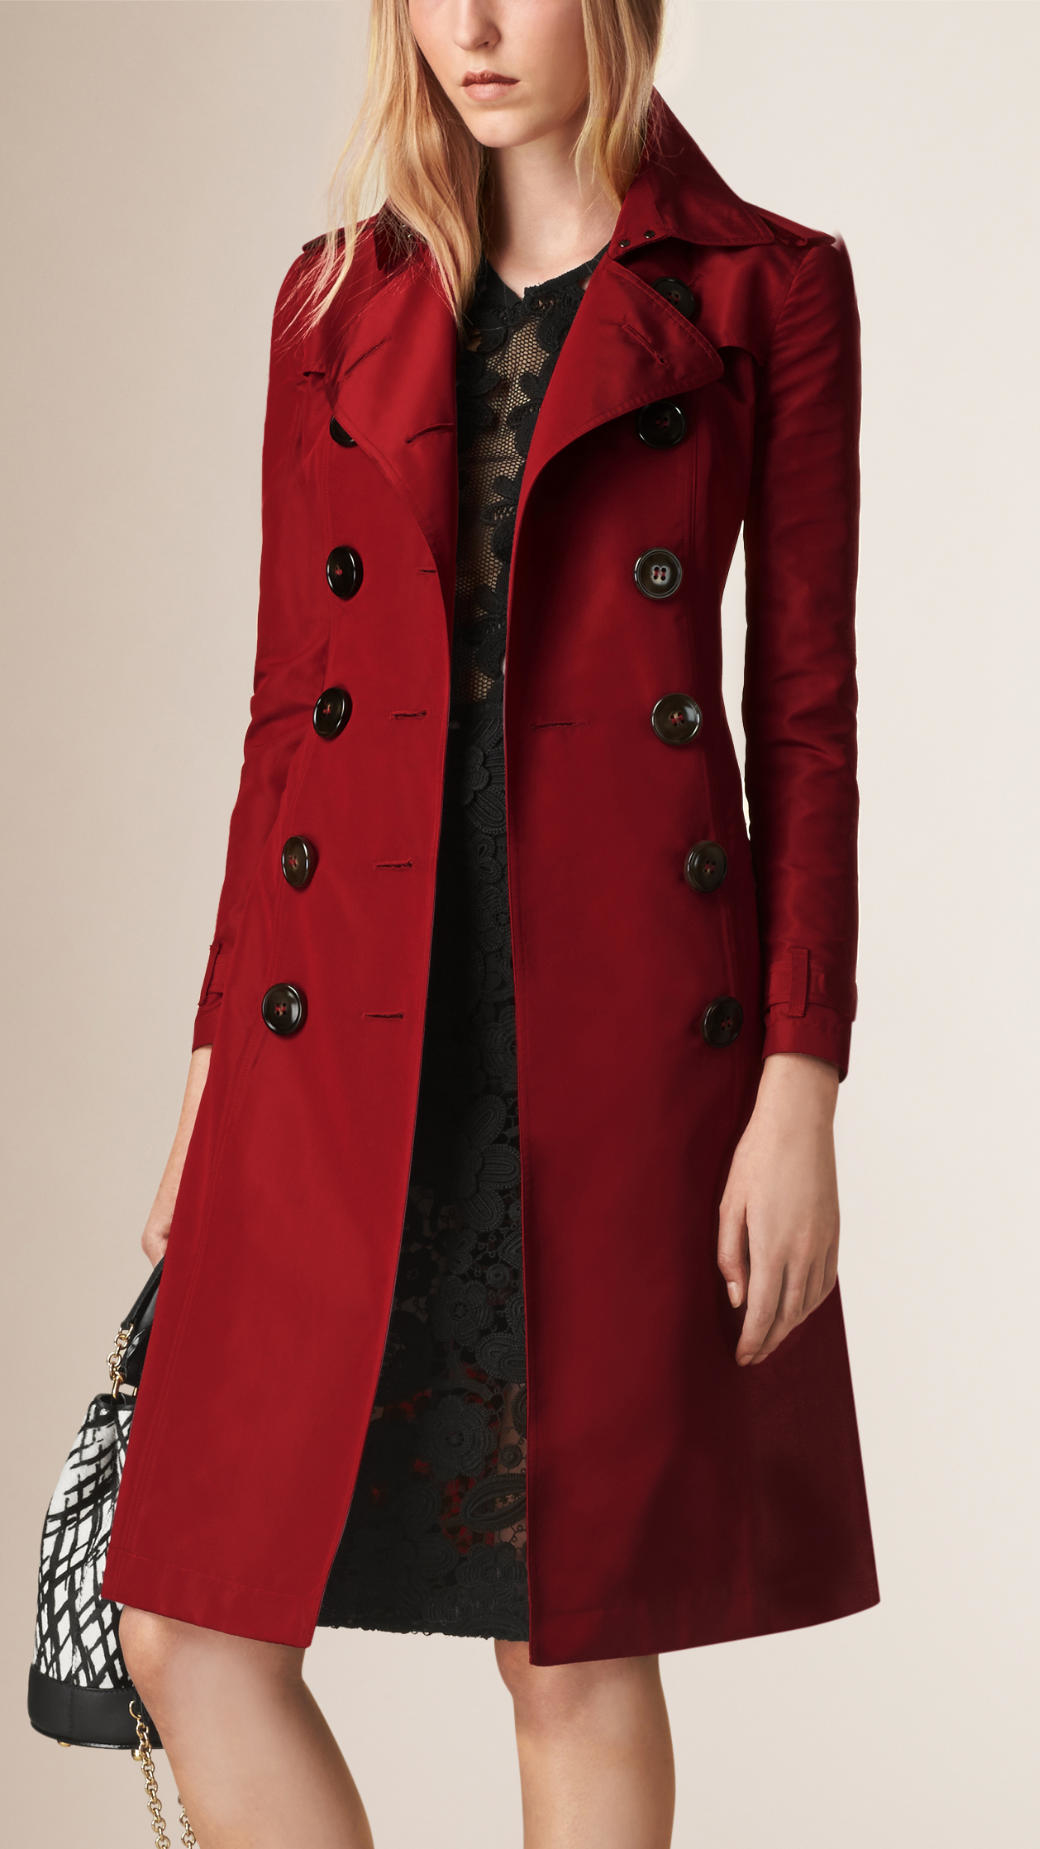 Burberry Silk Faille Trench Coat Dark Plum Pink in Red | Lyst